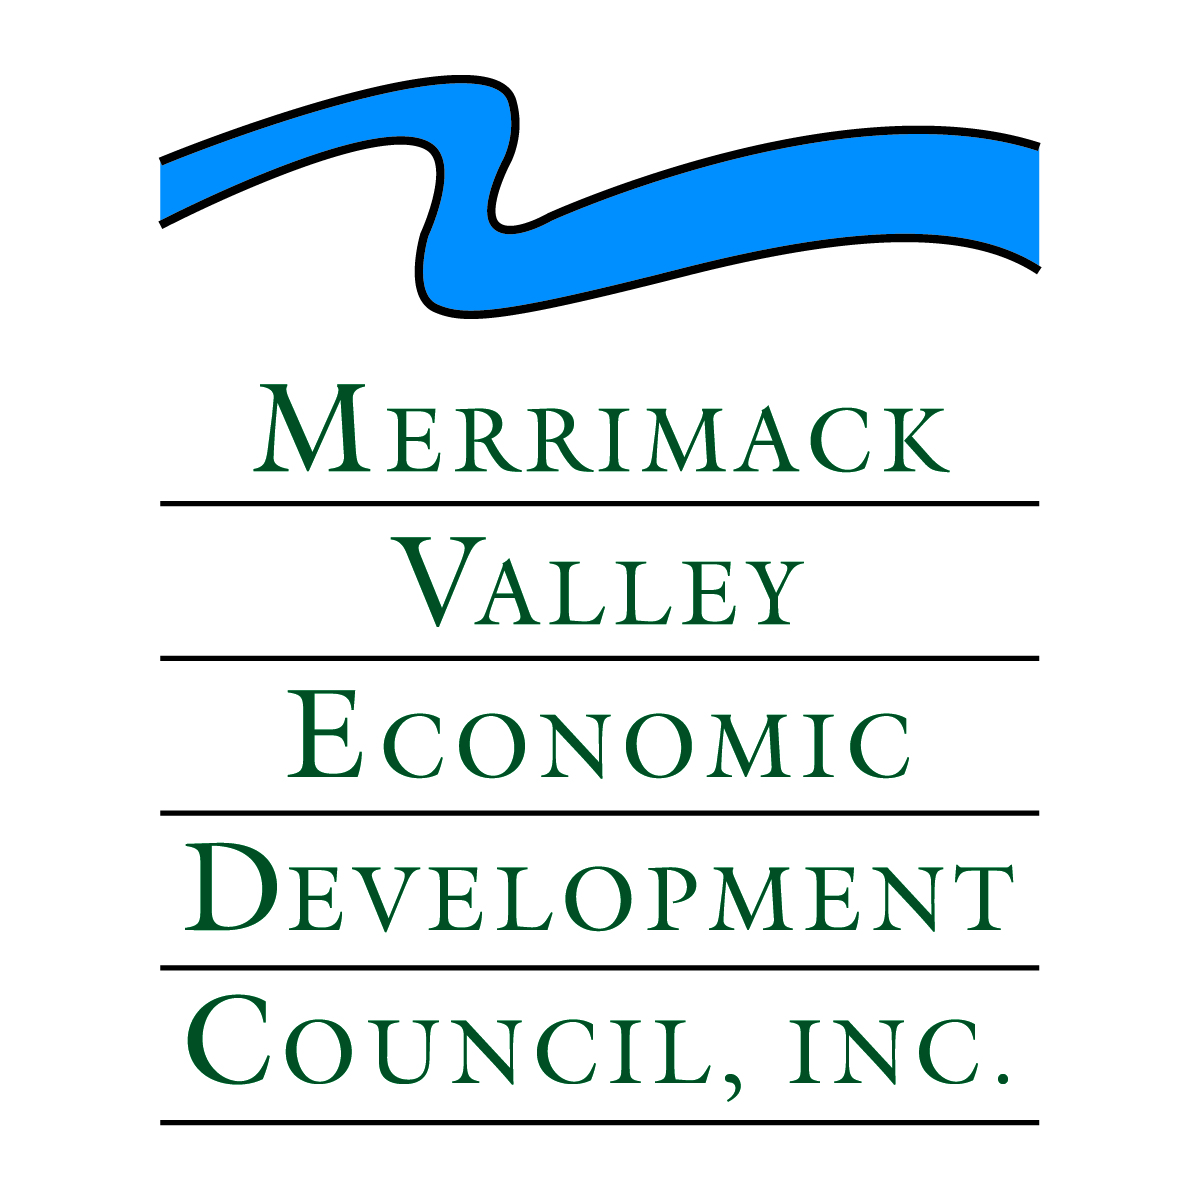 The Merrimack Valley Economic Development Council